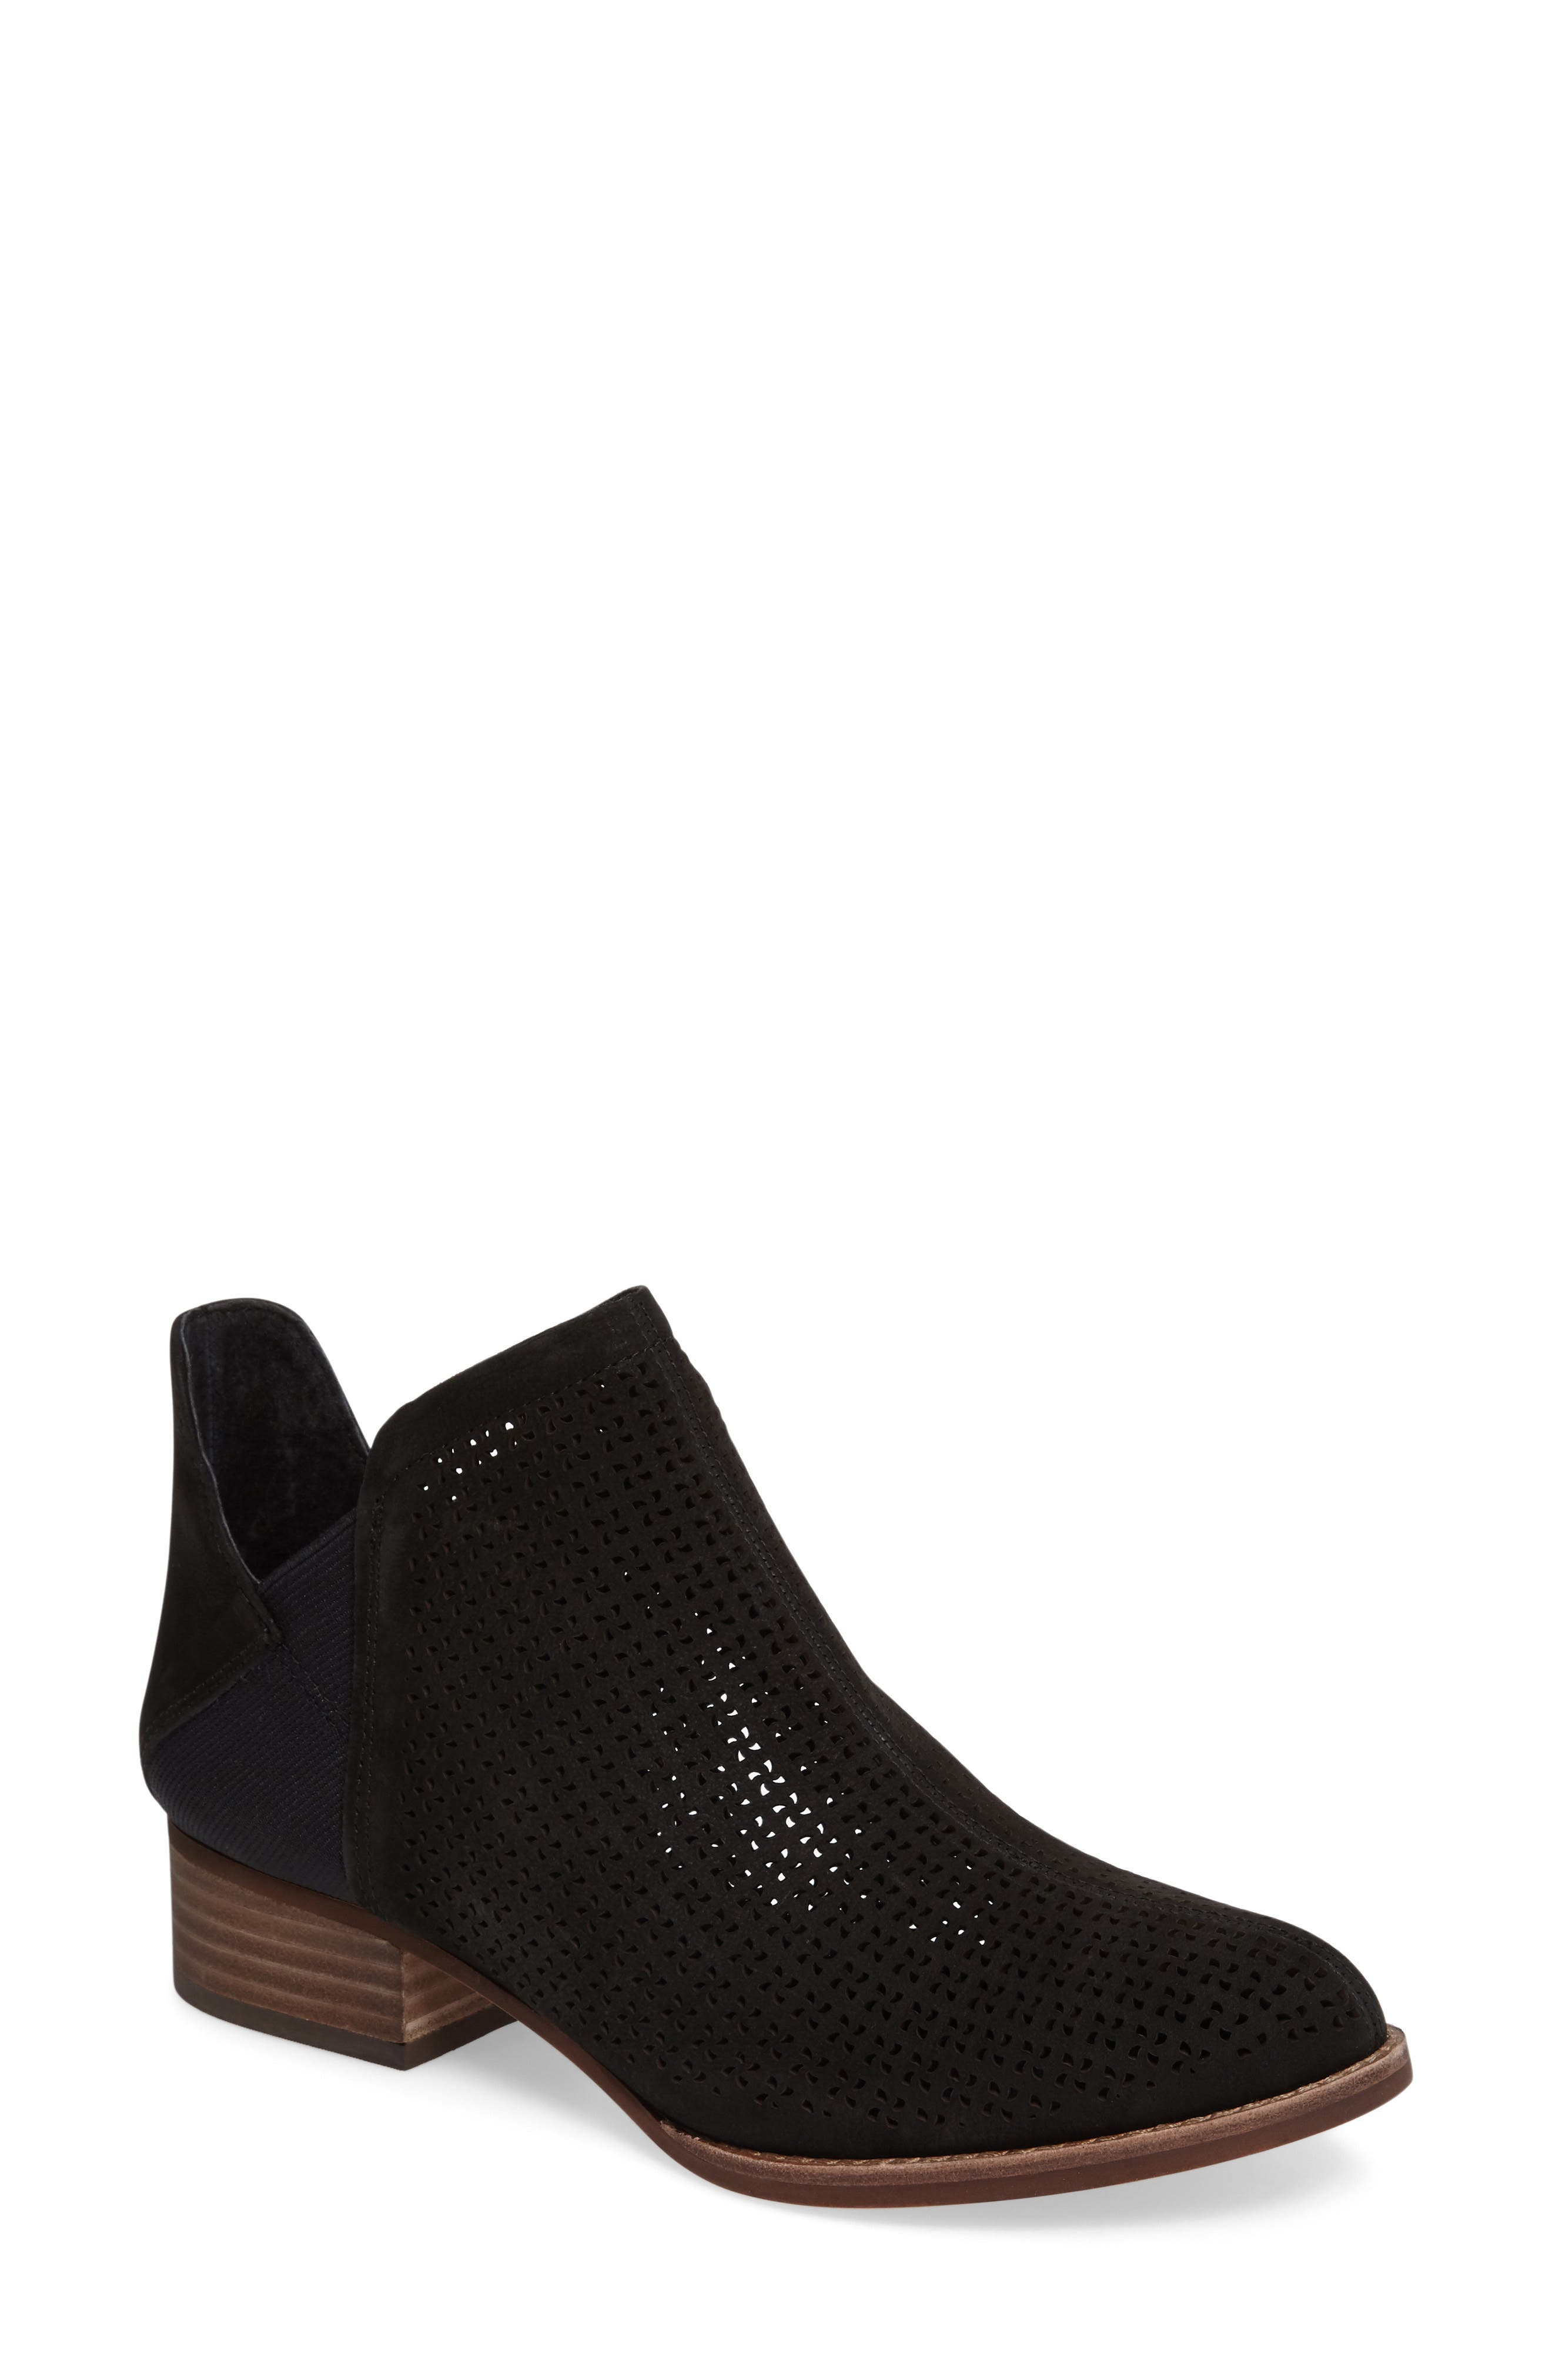 Celena Perforated Bootie, Main, color, 001